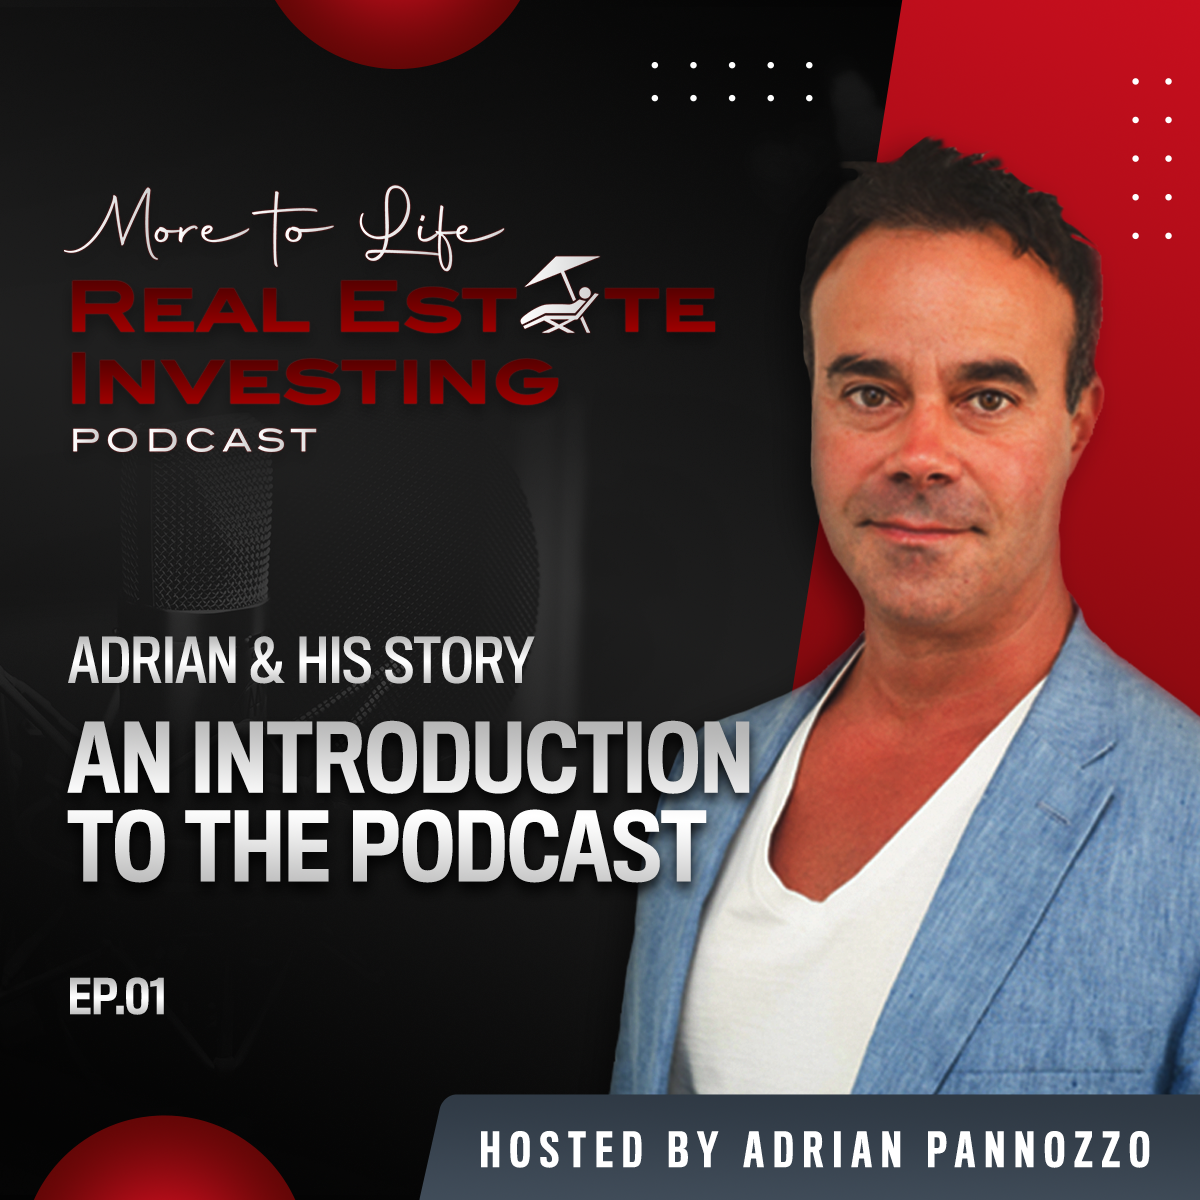 Introduction to More To Life Real Estate Investing Podcast